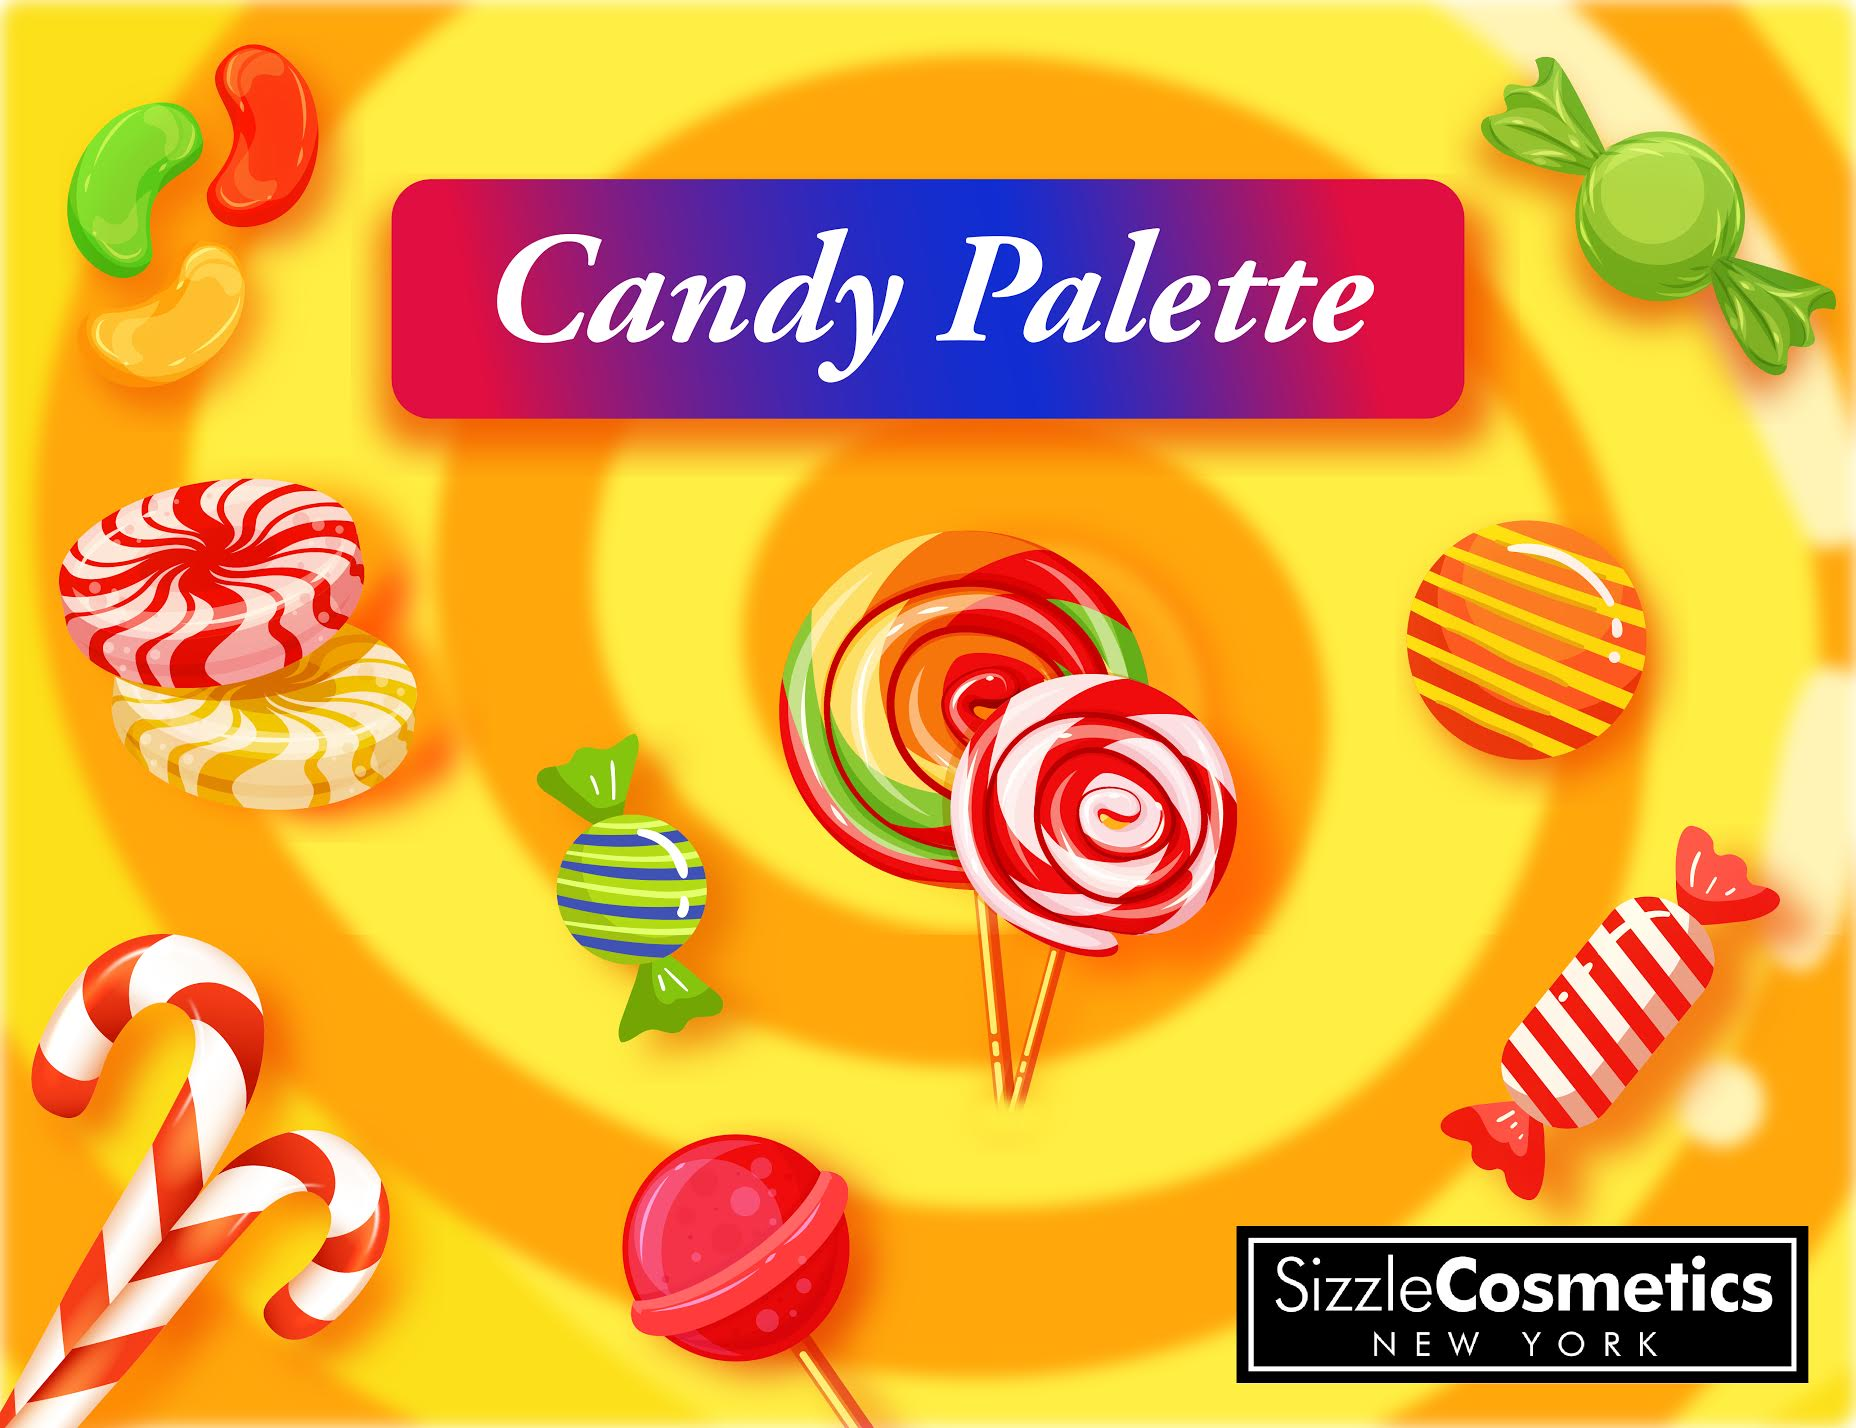 the-candy-palette-by-house-of-sizzle-cosmetics